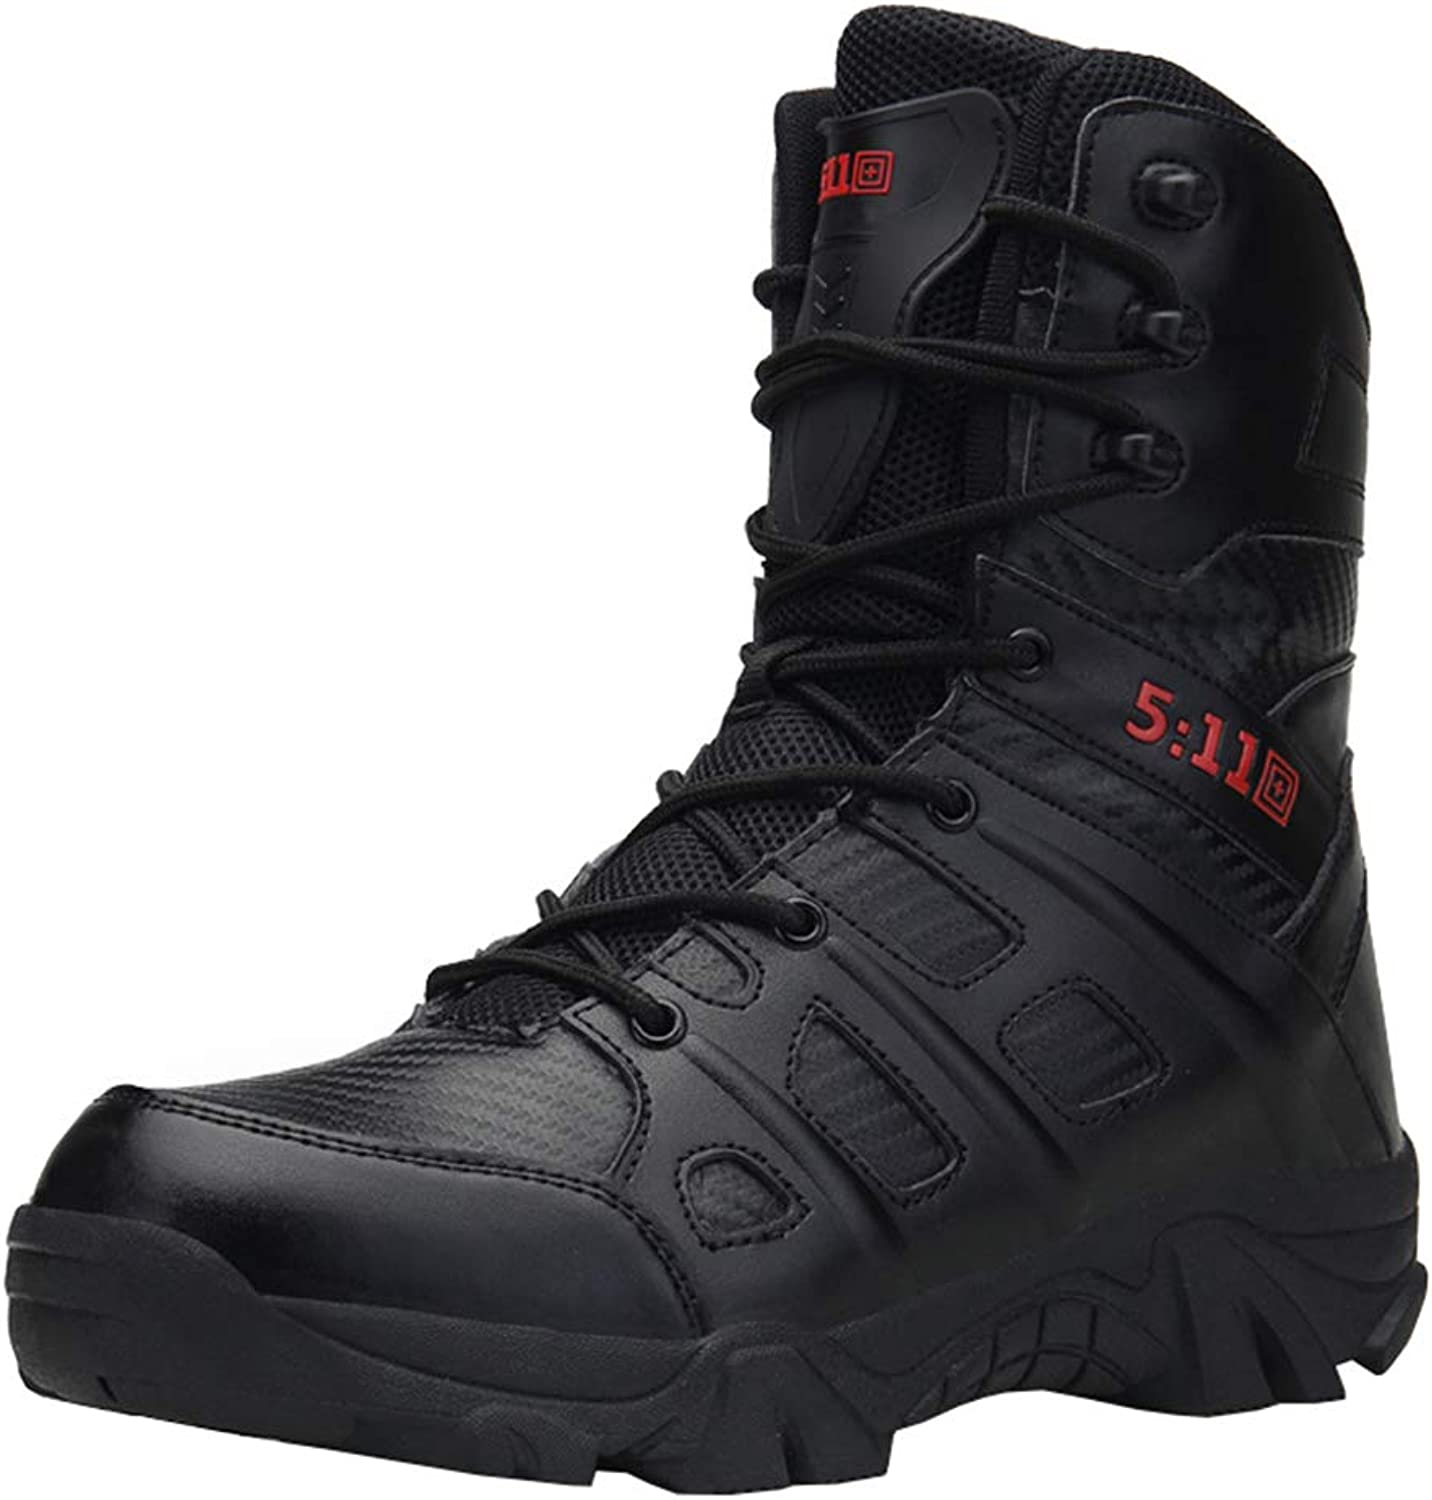 shoes Men's Martin boots casual high boots,Fashion classic zipper boots punk leather military boots,Outdoor waterproof non-slip bare boots motorcycle fighting